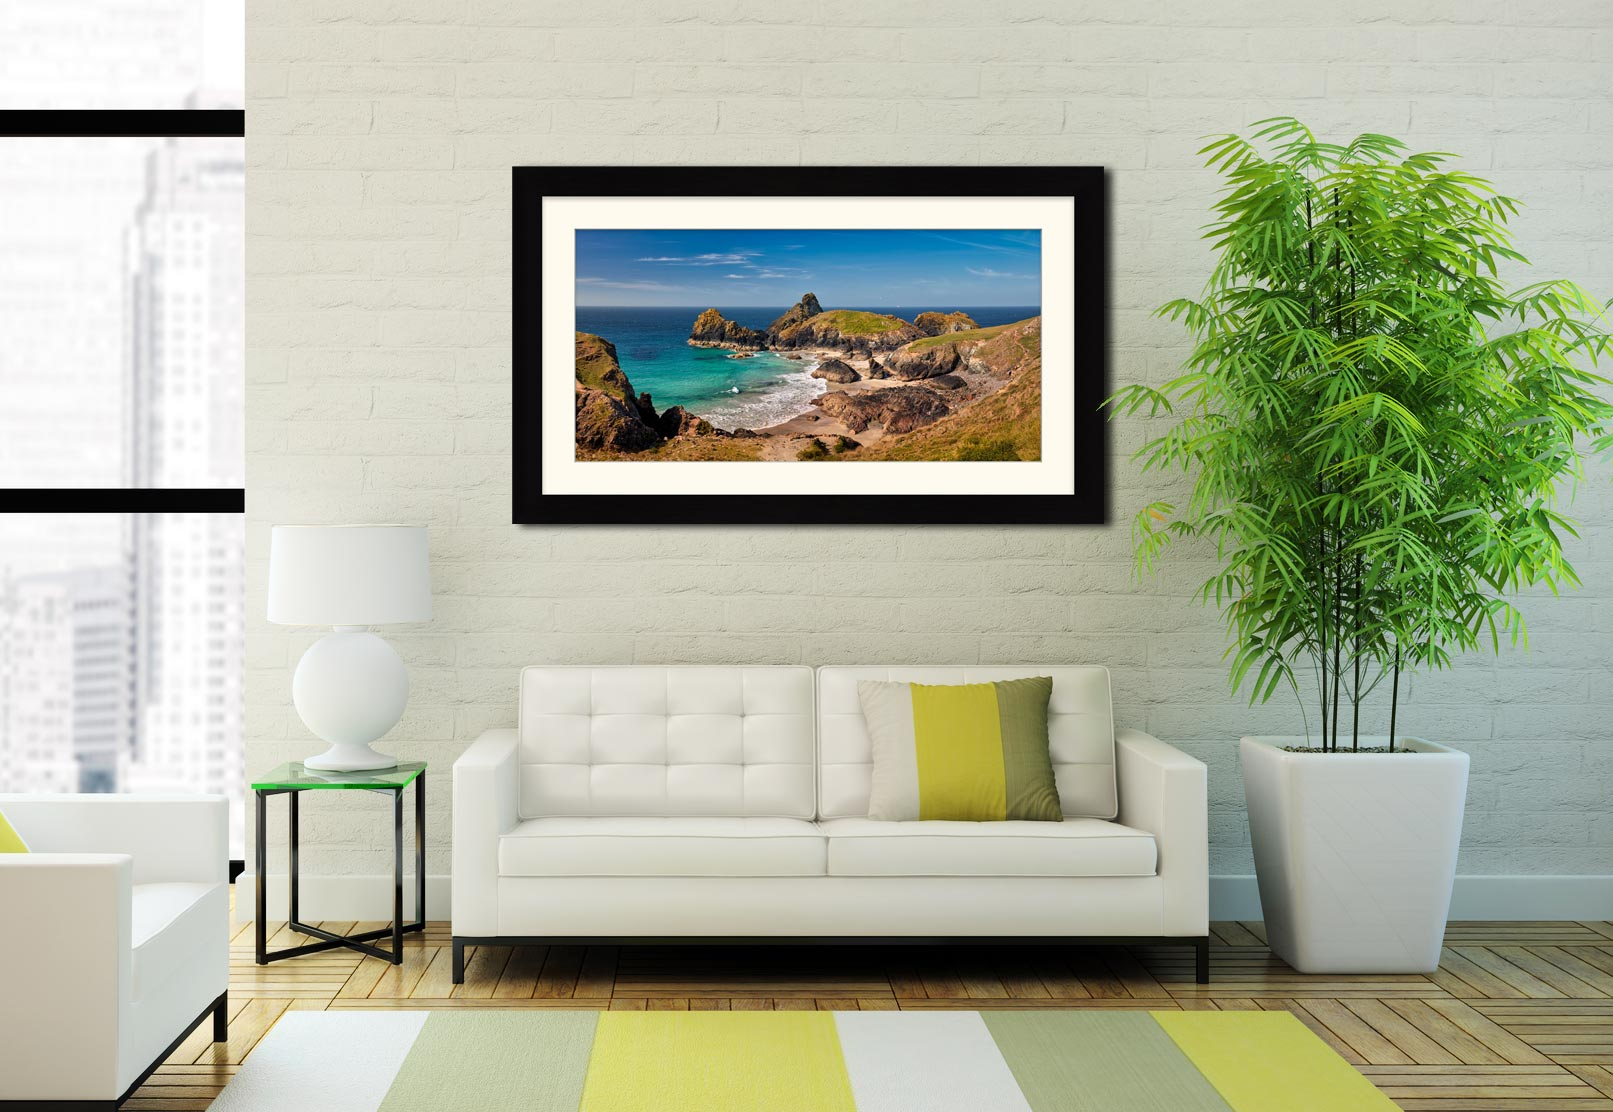 Kynance Cove Tropical Waters - Framed Print with Mount on Wall